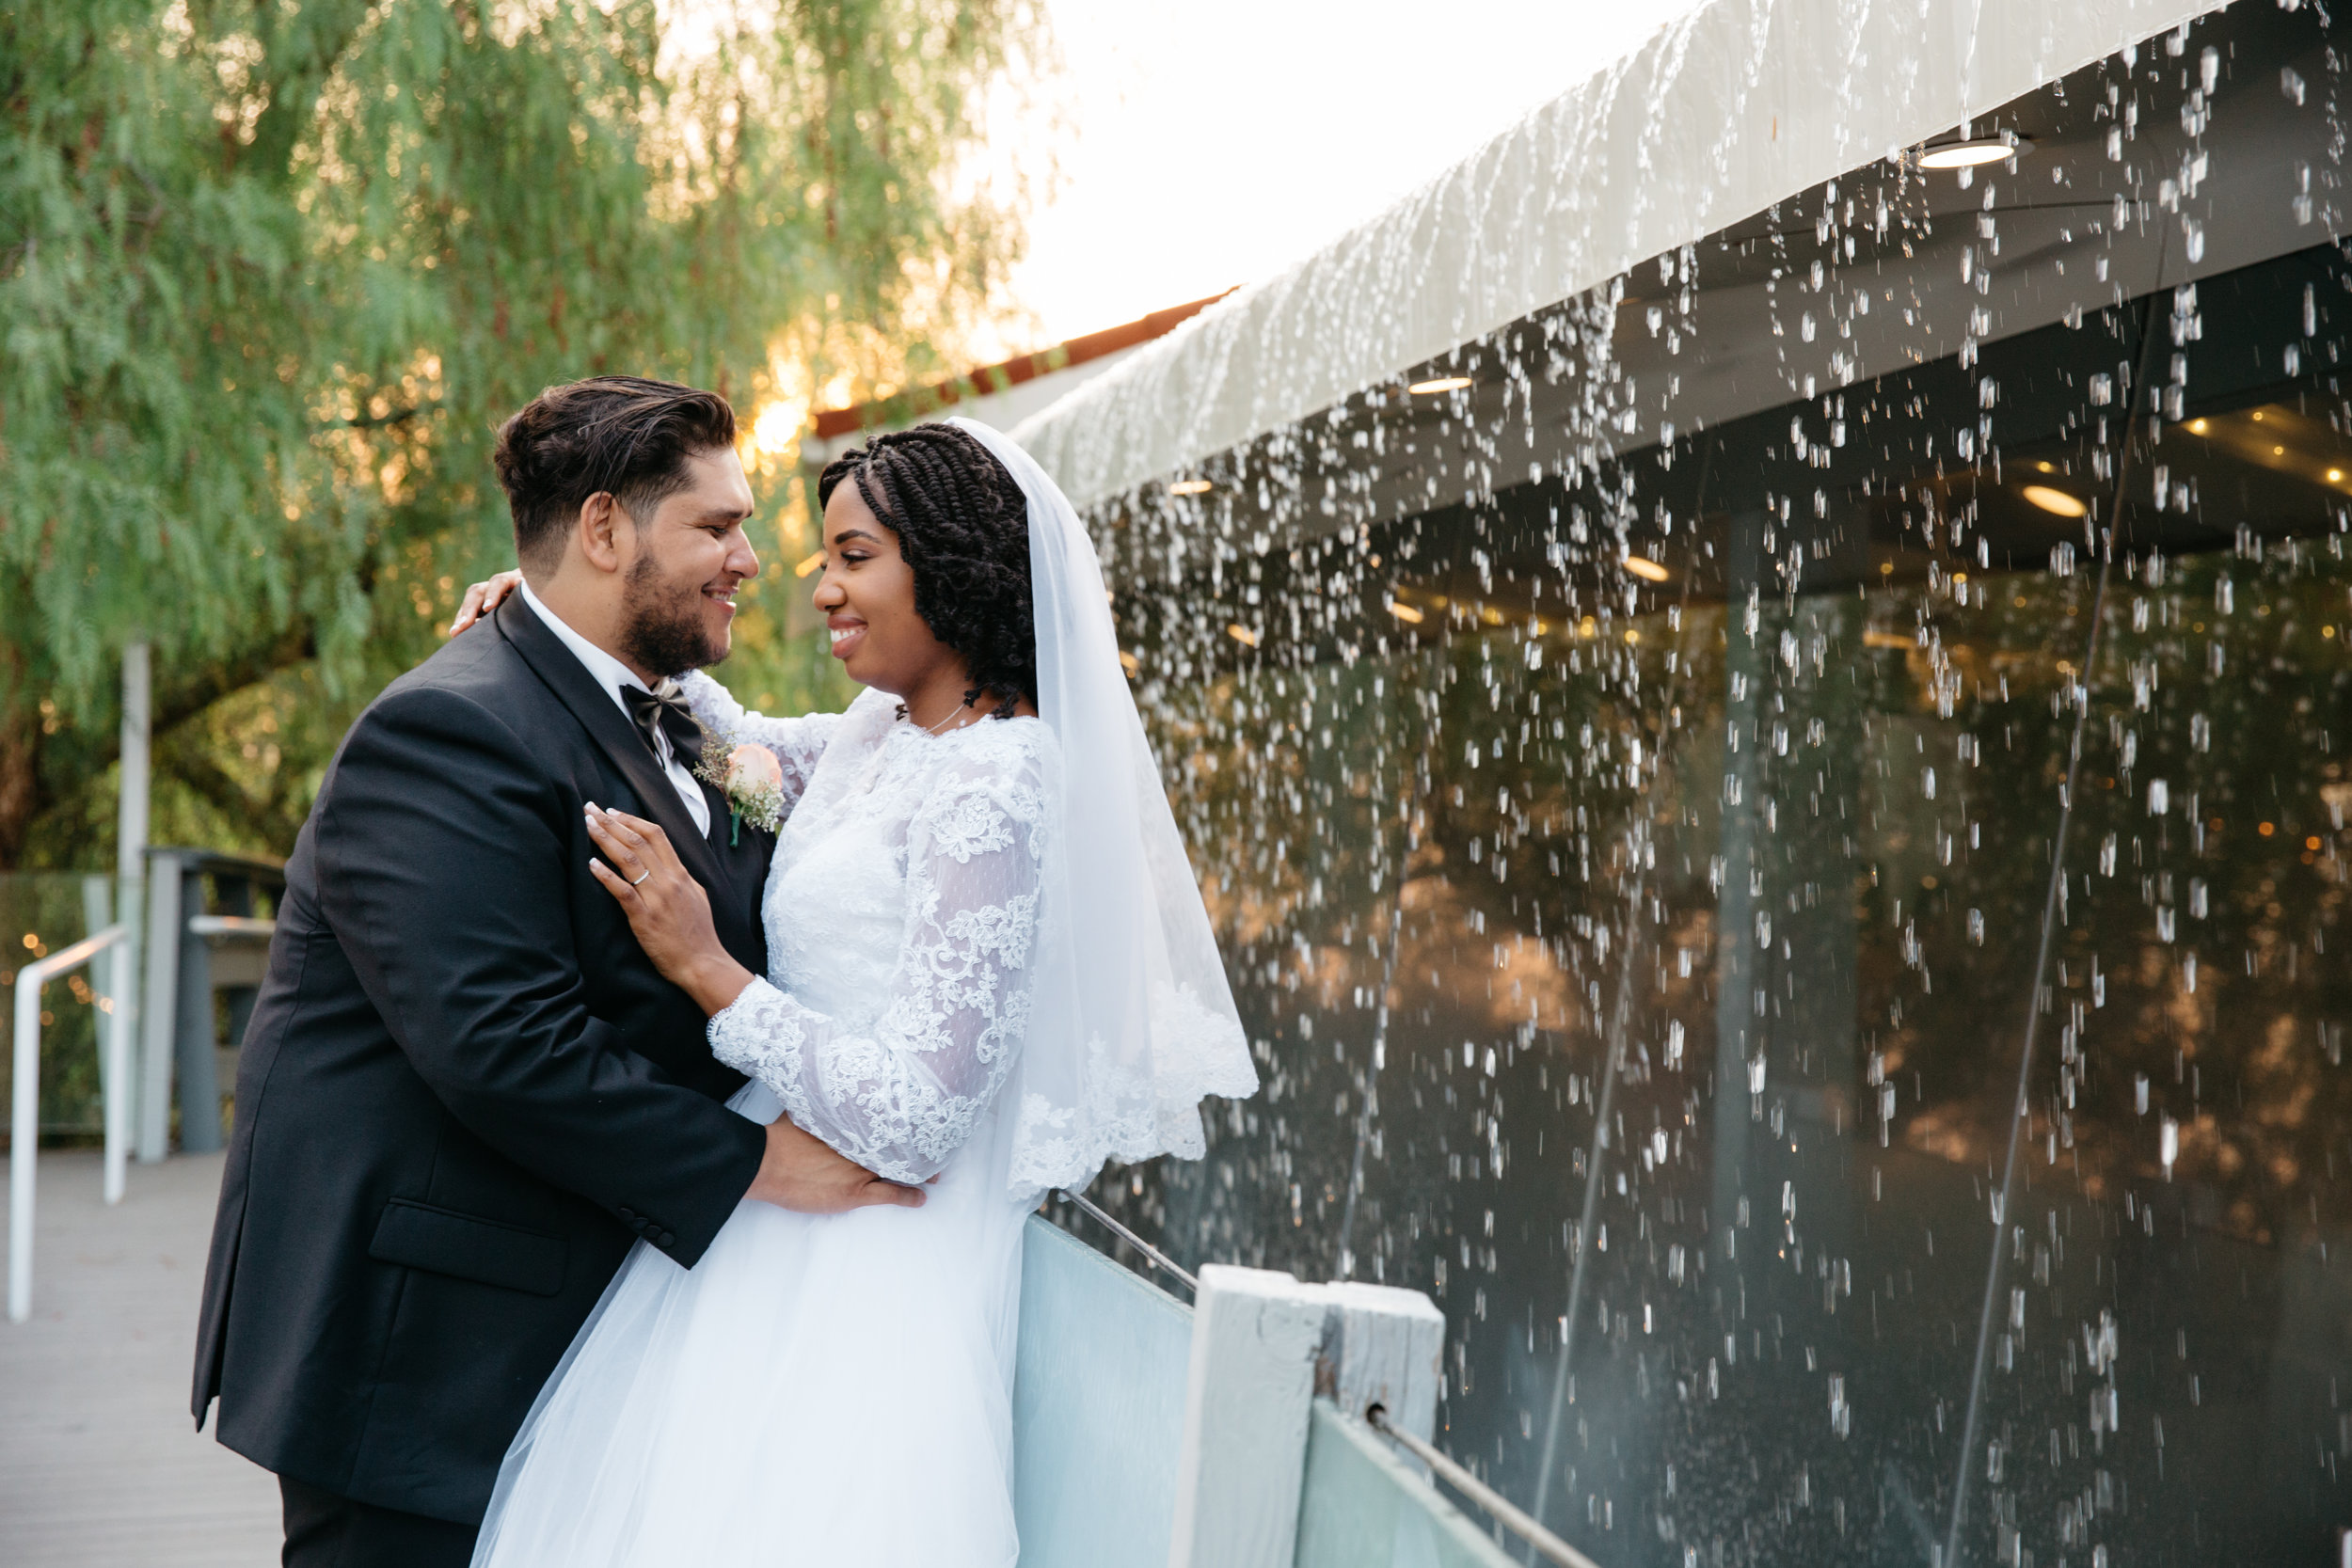 The Vineyard Wedding Jenna Bells and Laces Photography-59.jpg